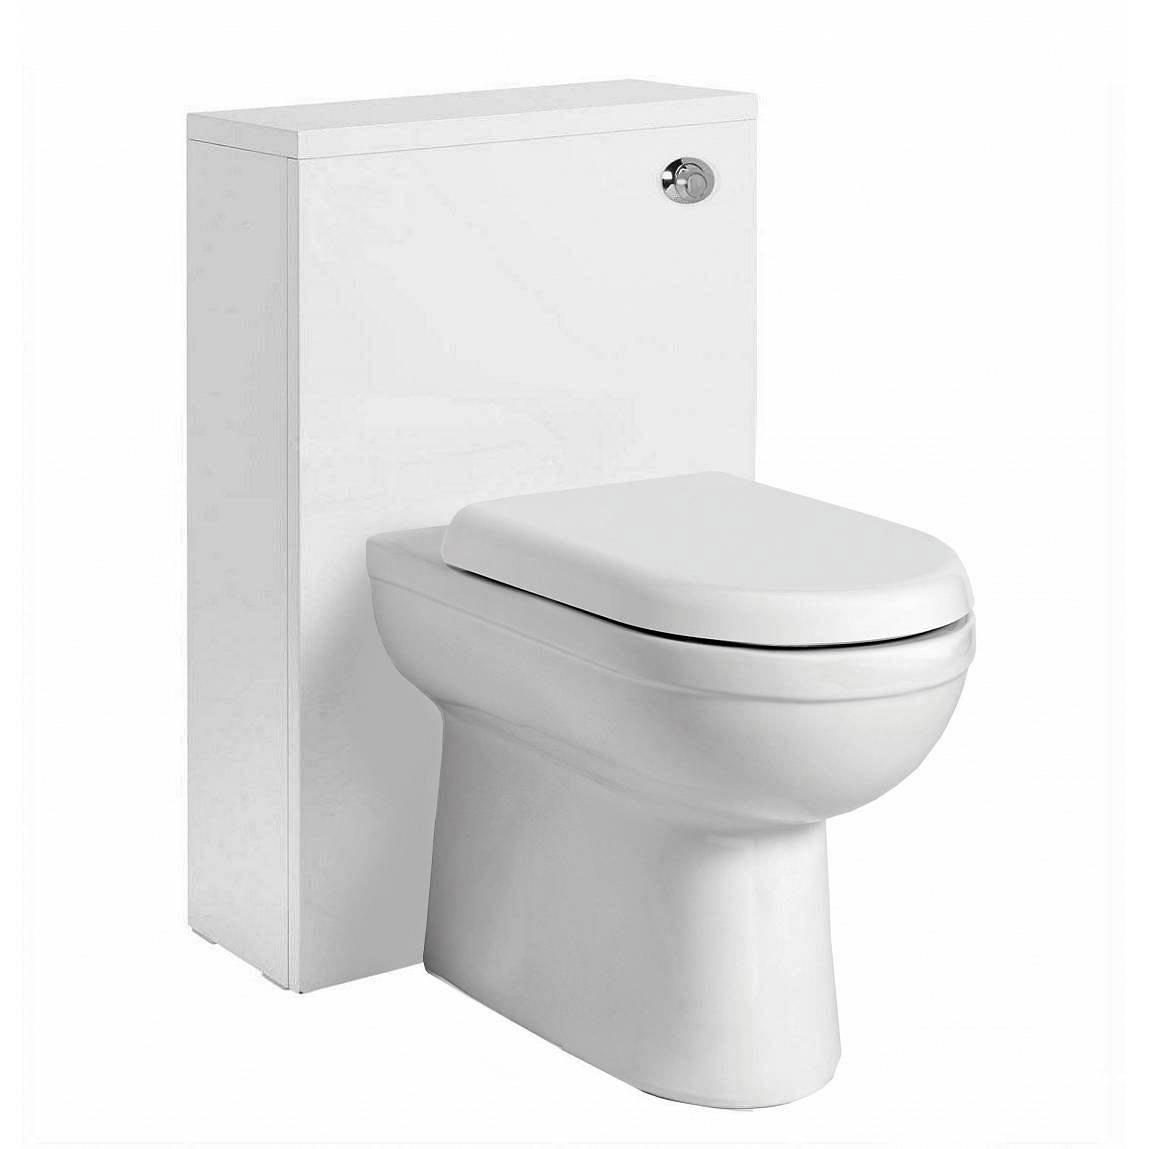 Image of Autograph Back To Wall Toilet inc Seat & Slimline White Unit